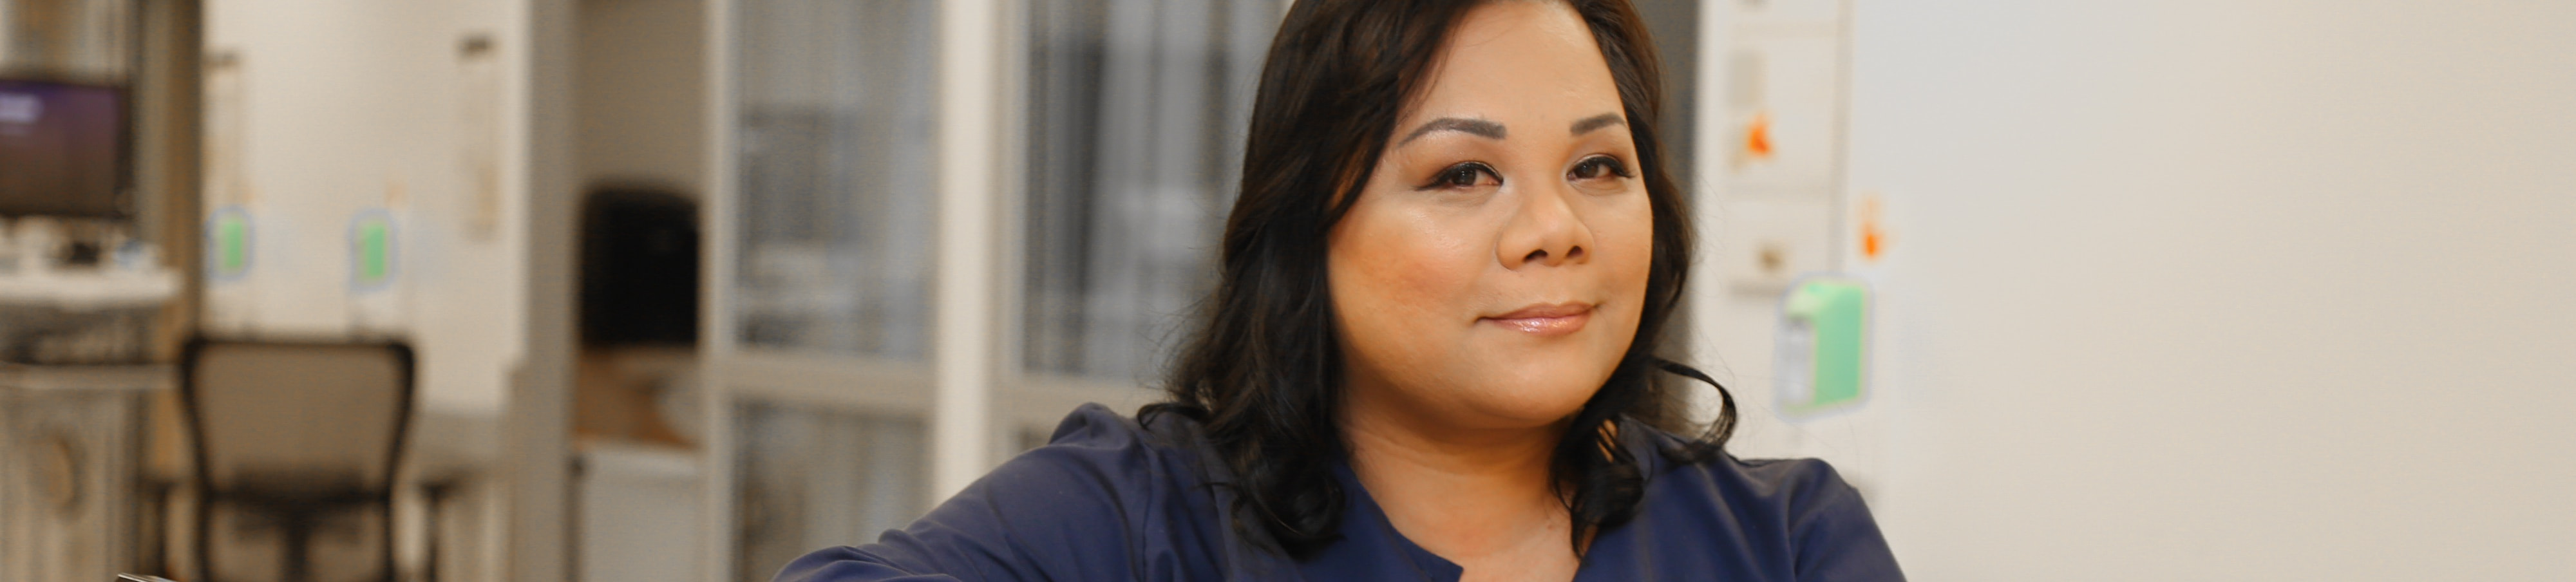 Get to Know Our ICU Nursing Supervisor in a Working Nurse